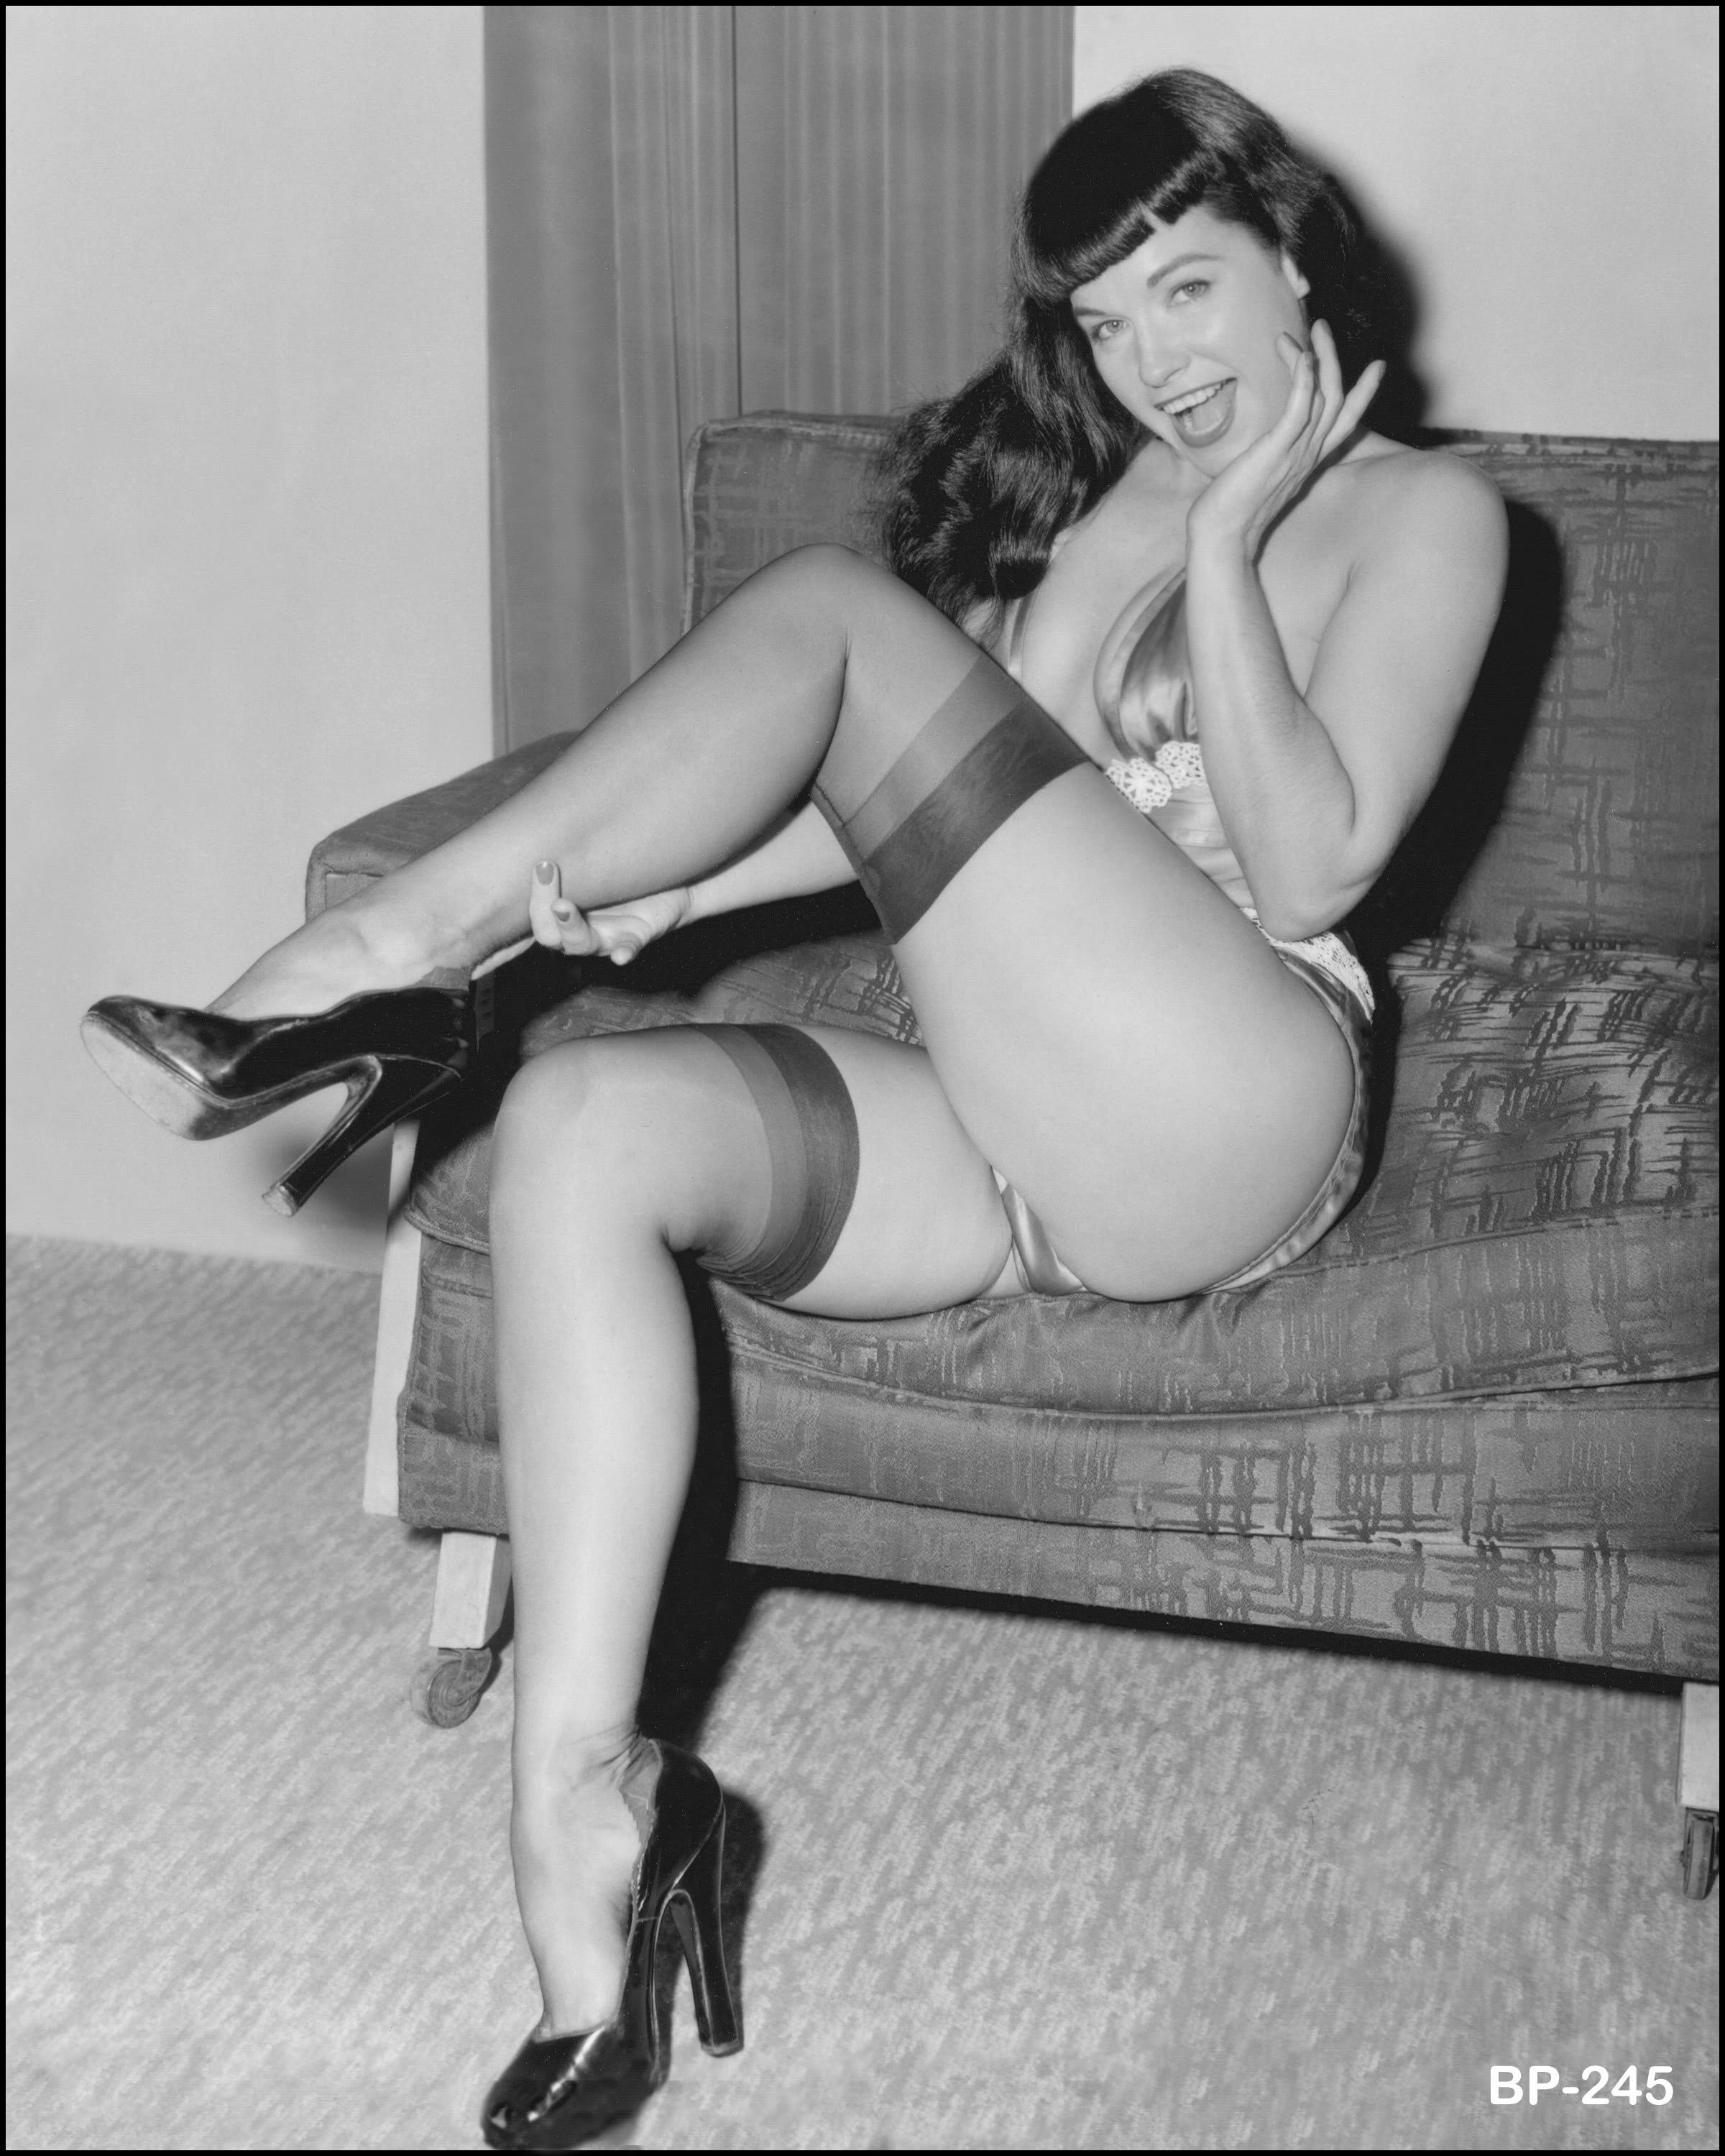 For this weeks Pin-Up of the Week we celebrate the life of Pin-Up Icon Bett